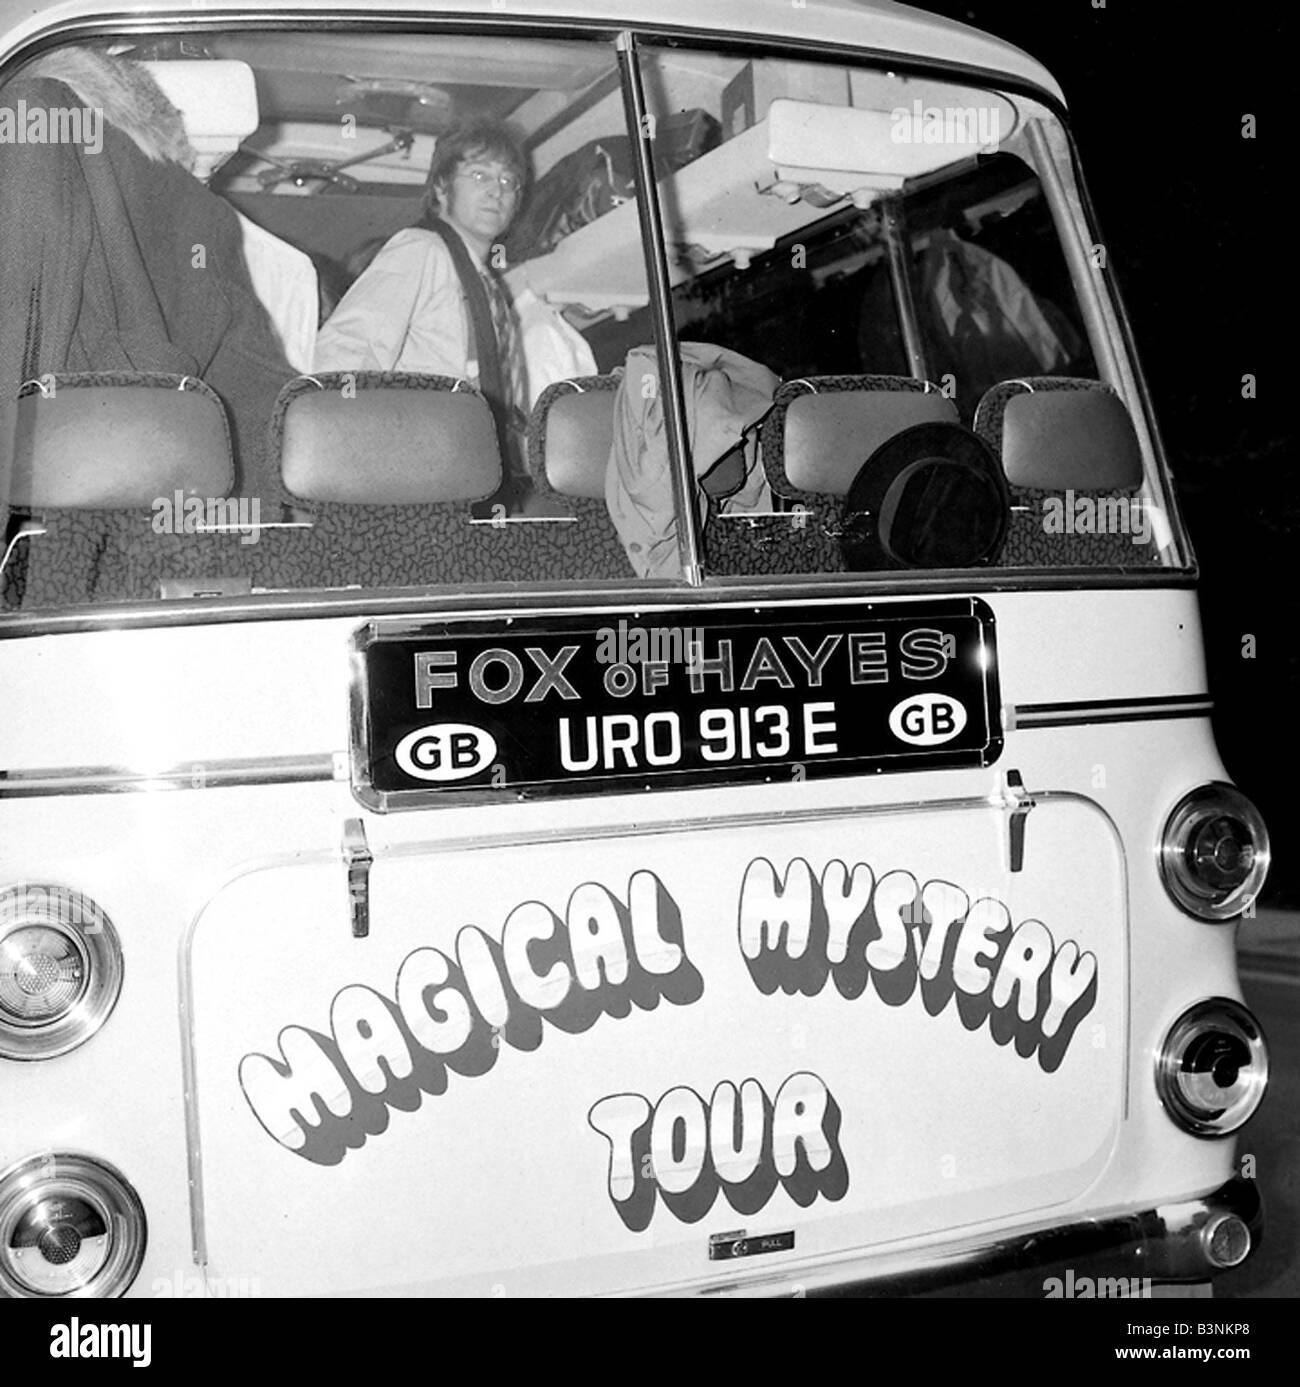 Beatles Files 1967 John Lennon Aboard The Magical Mystery Tour Bus Stock Photo Alamy